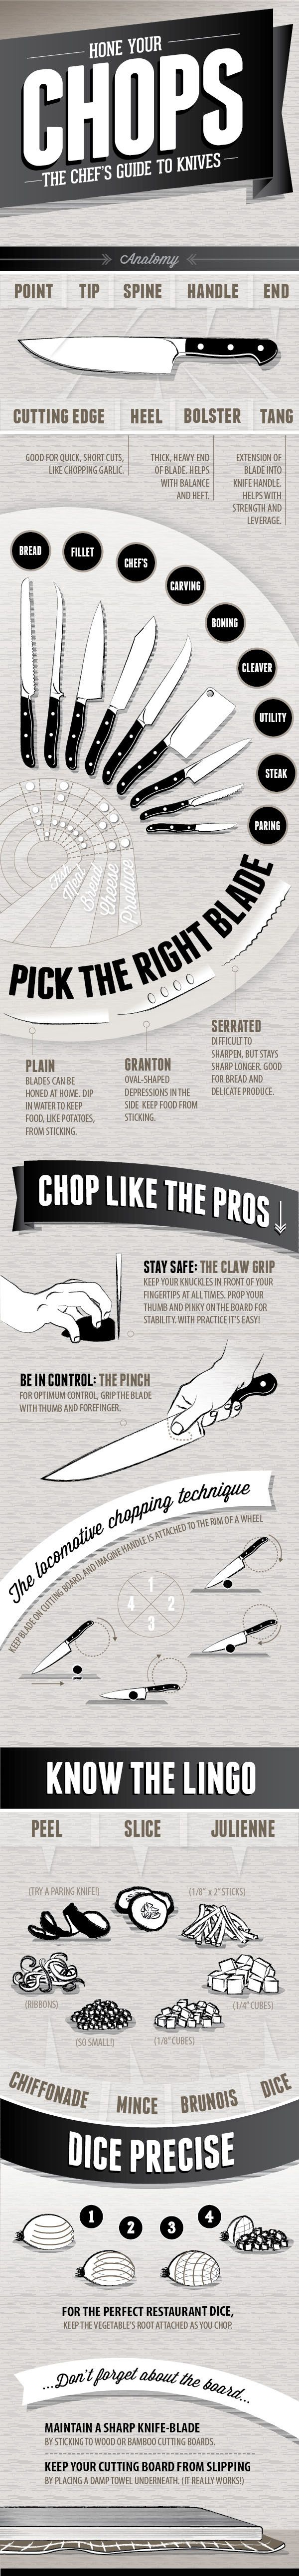 The Chef's Guide to Knives